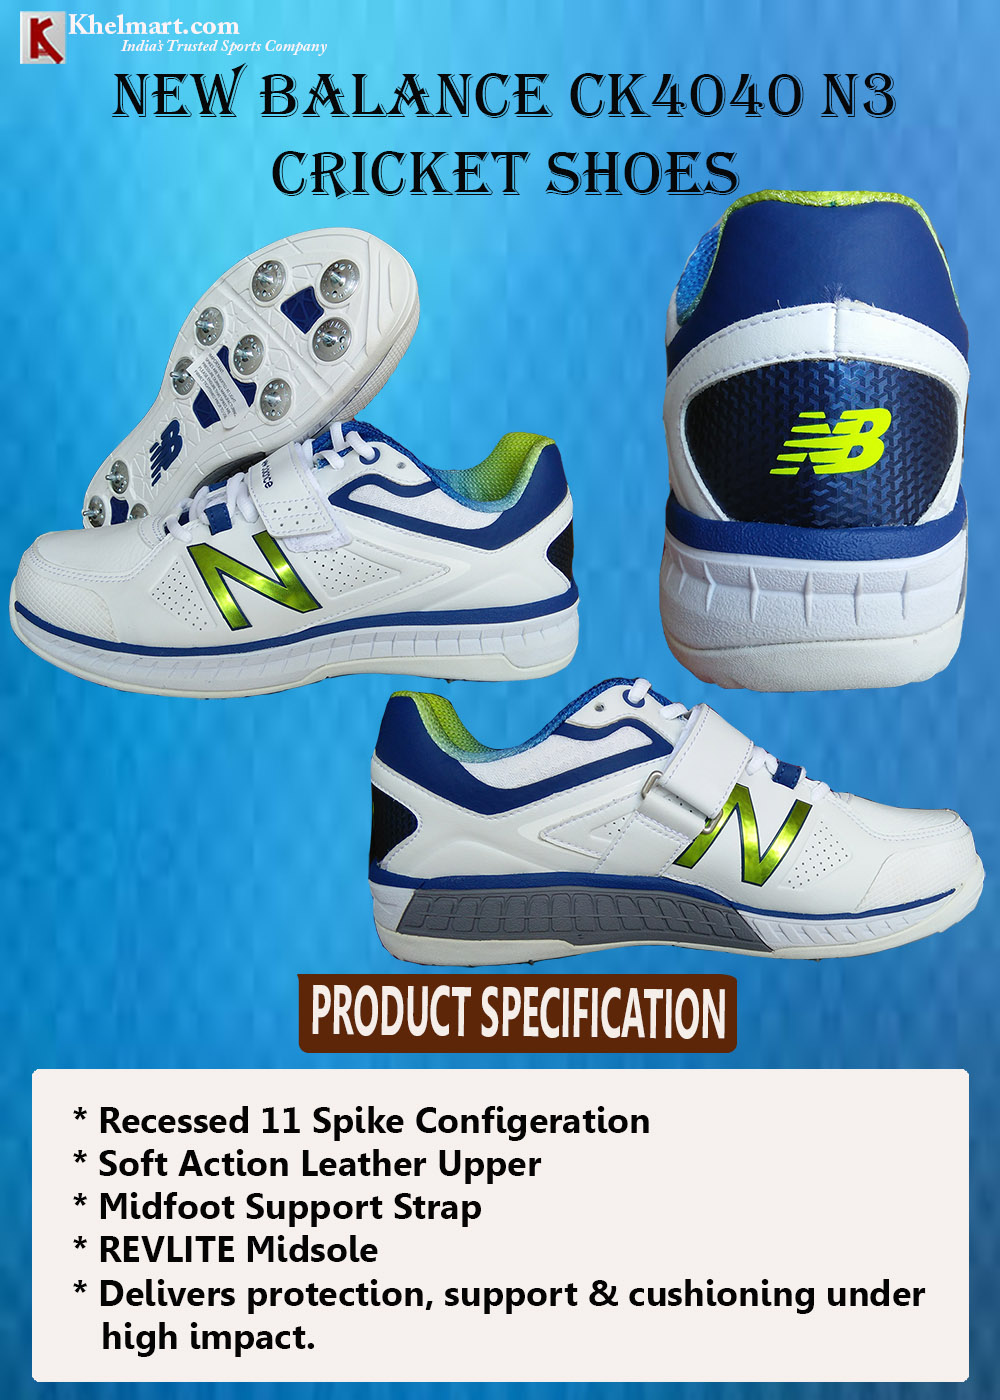 New Balance CK4040 N3 Cricket Shoes_1